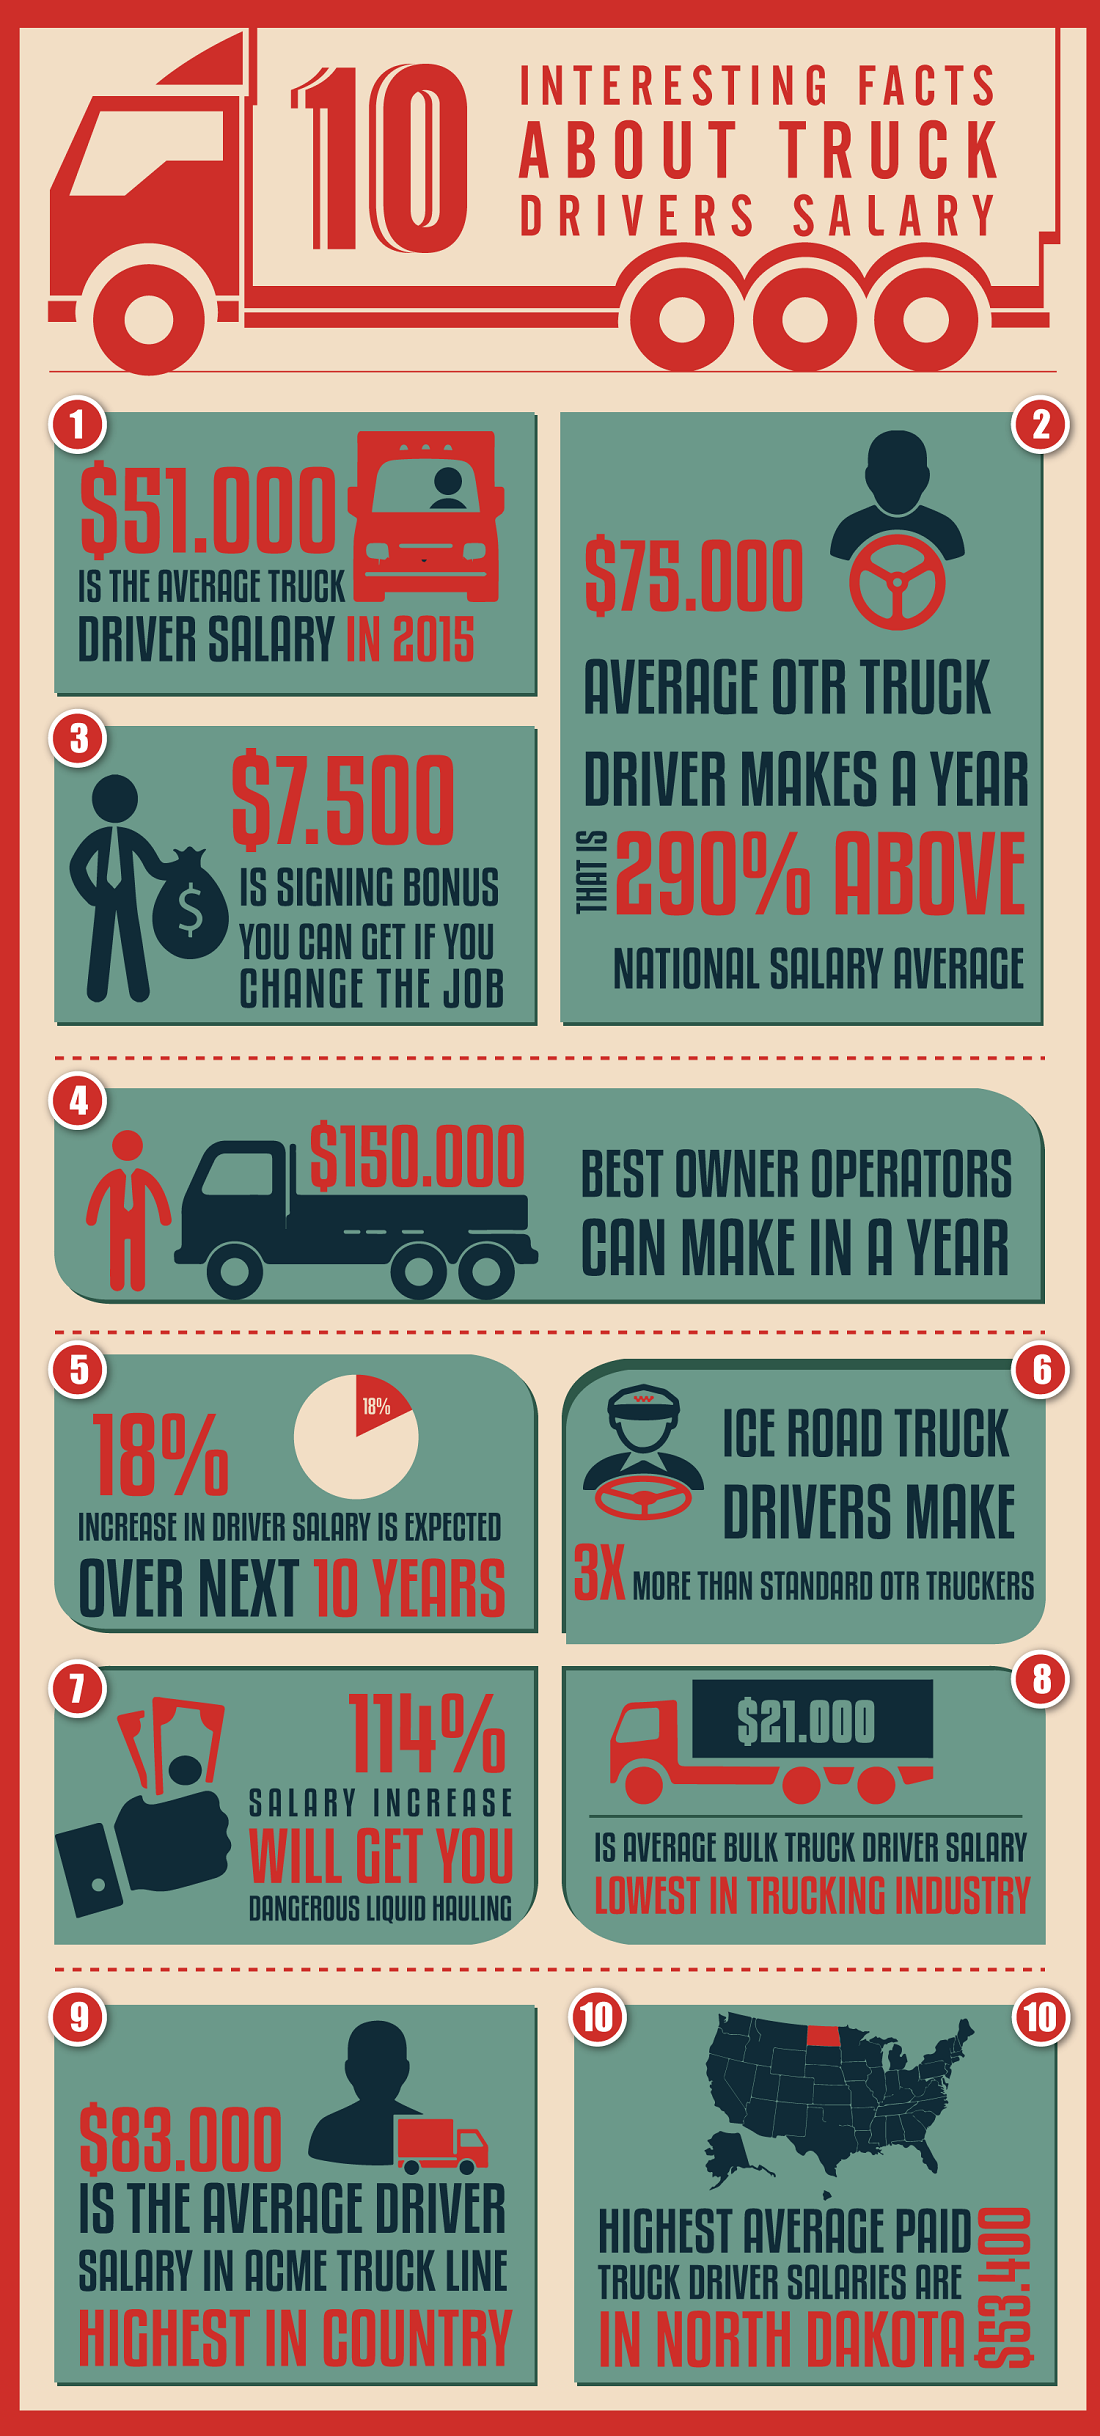 10 Interesting Facts About Truck Drivers Salary